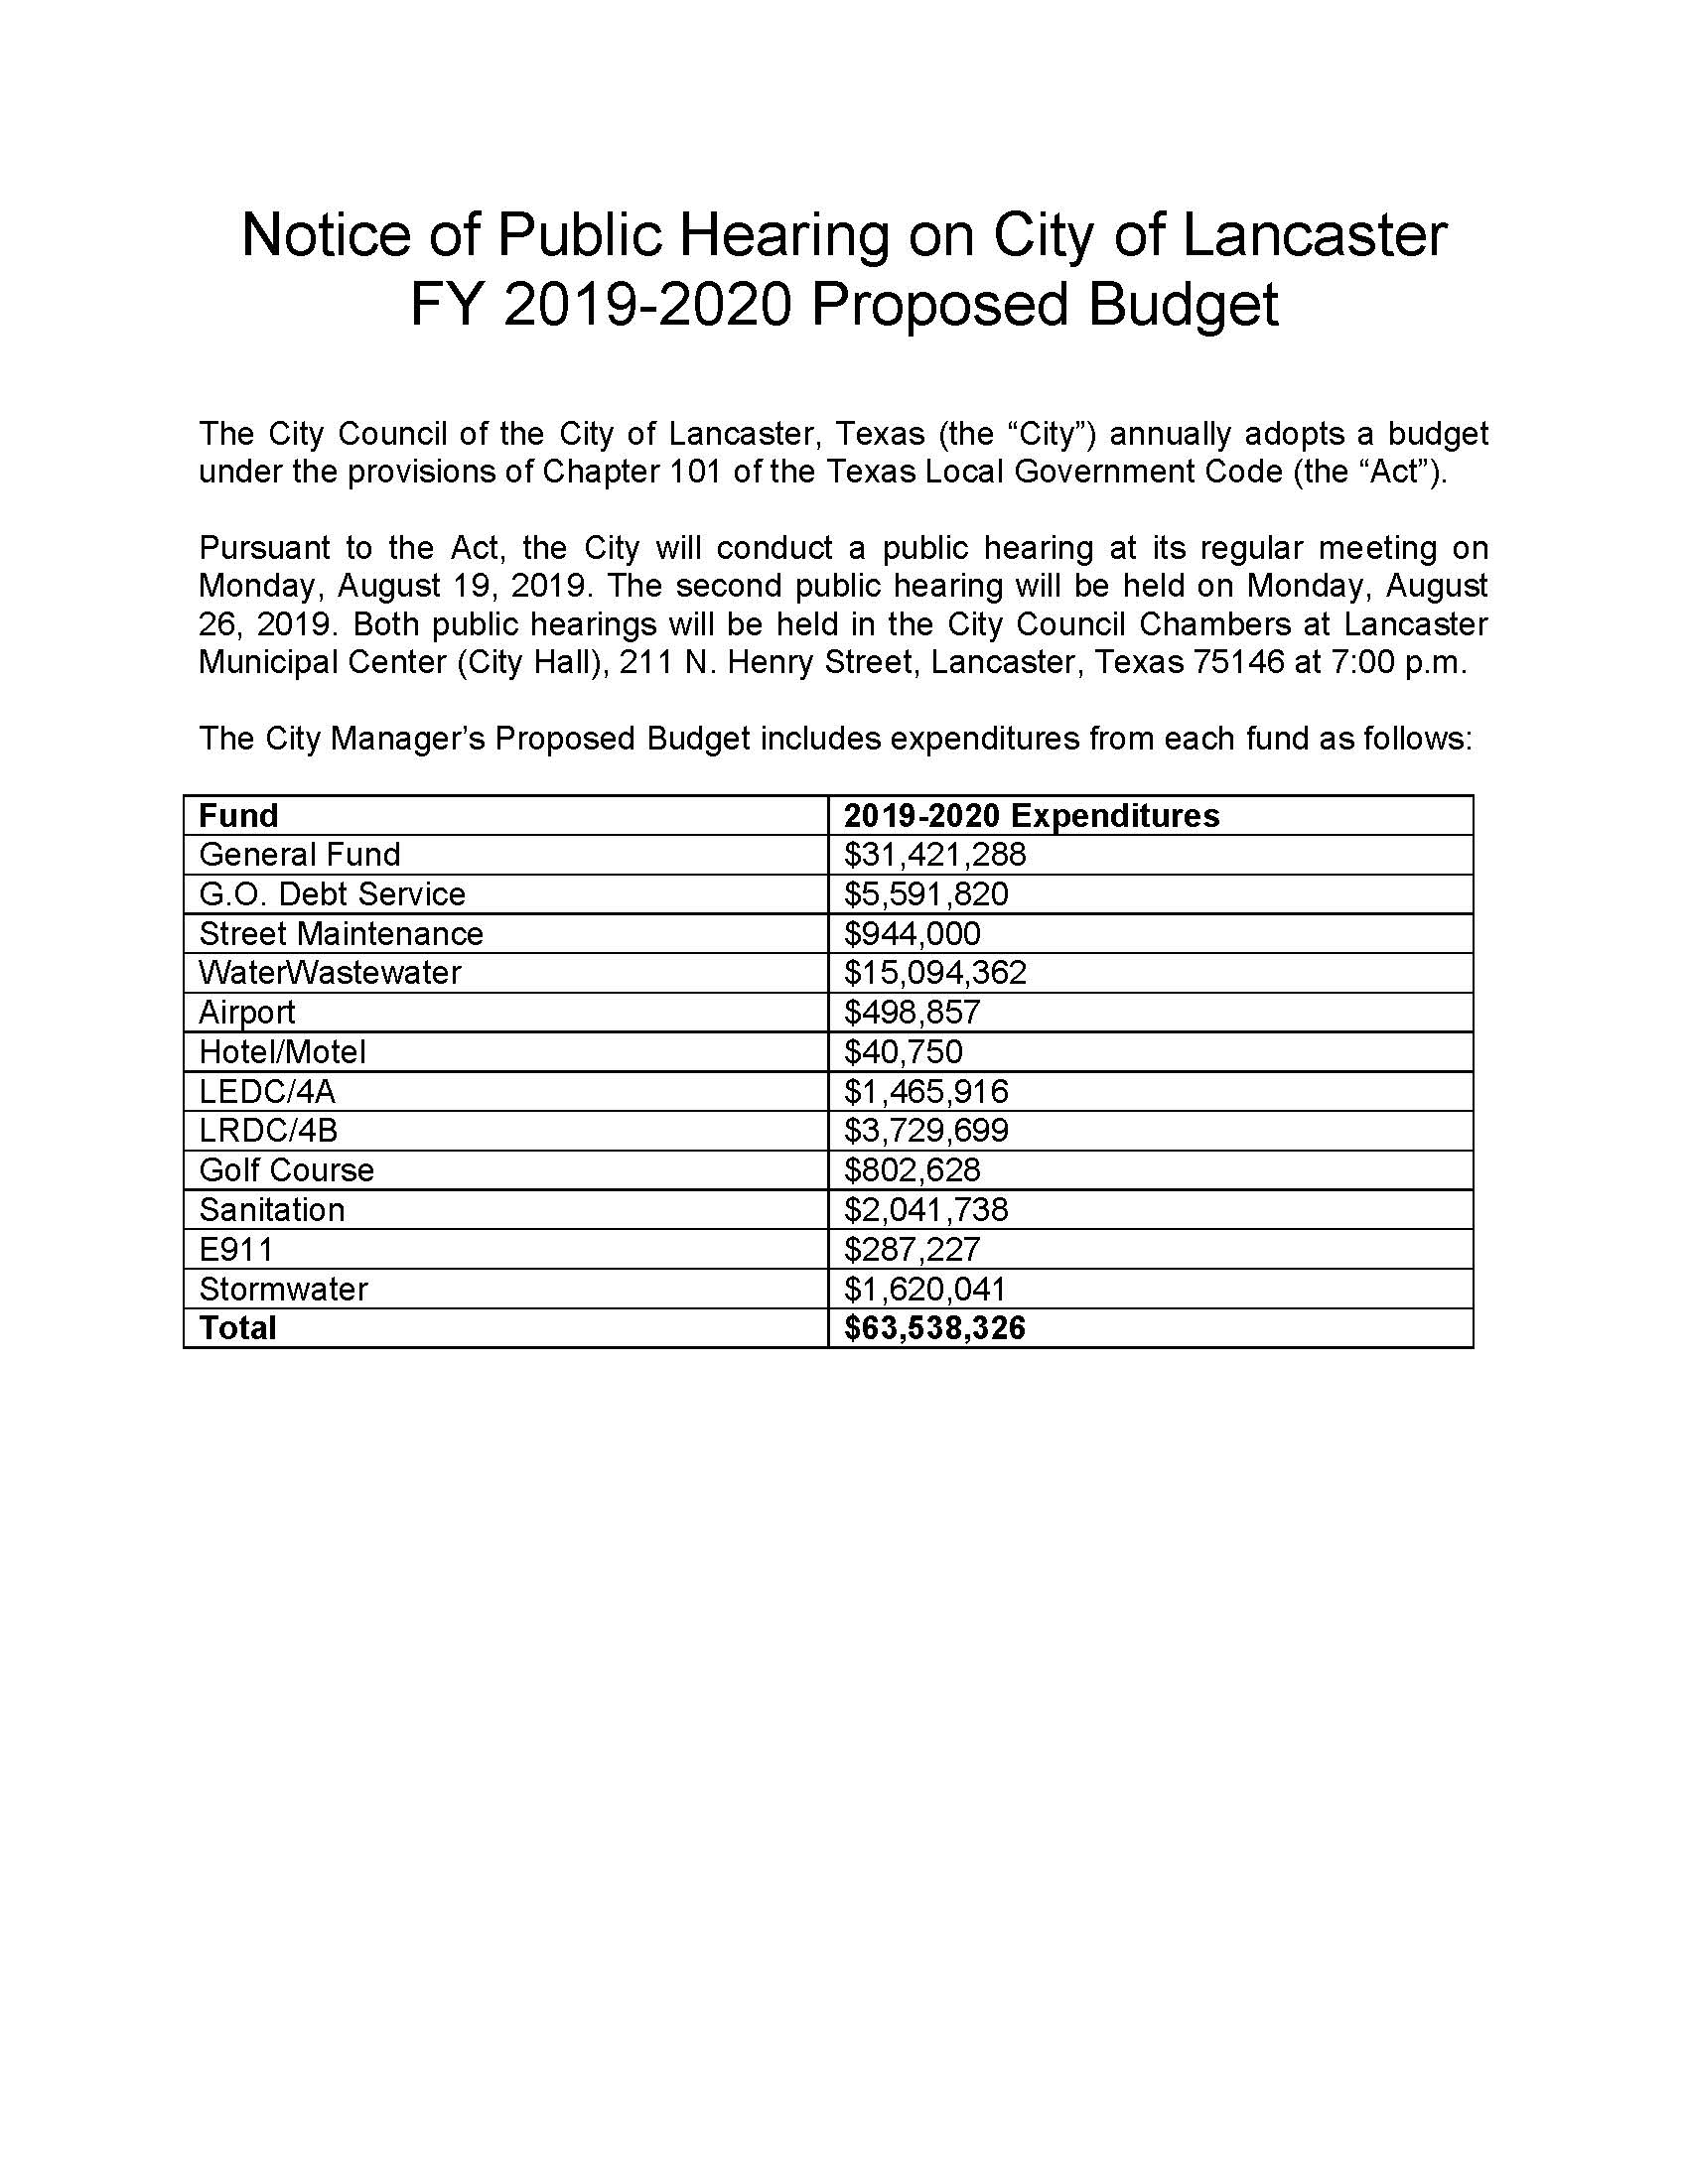 Notice of FY 2020 Proposed Budget